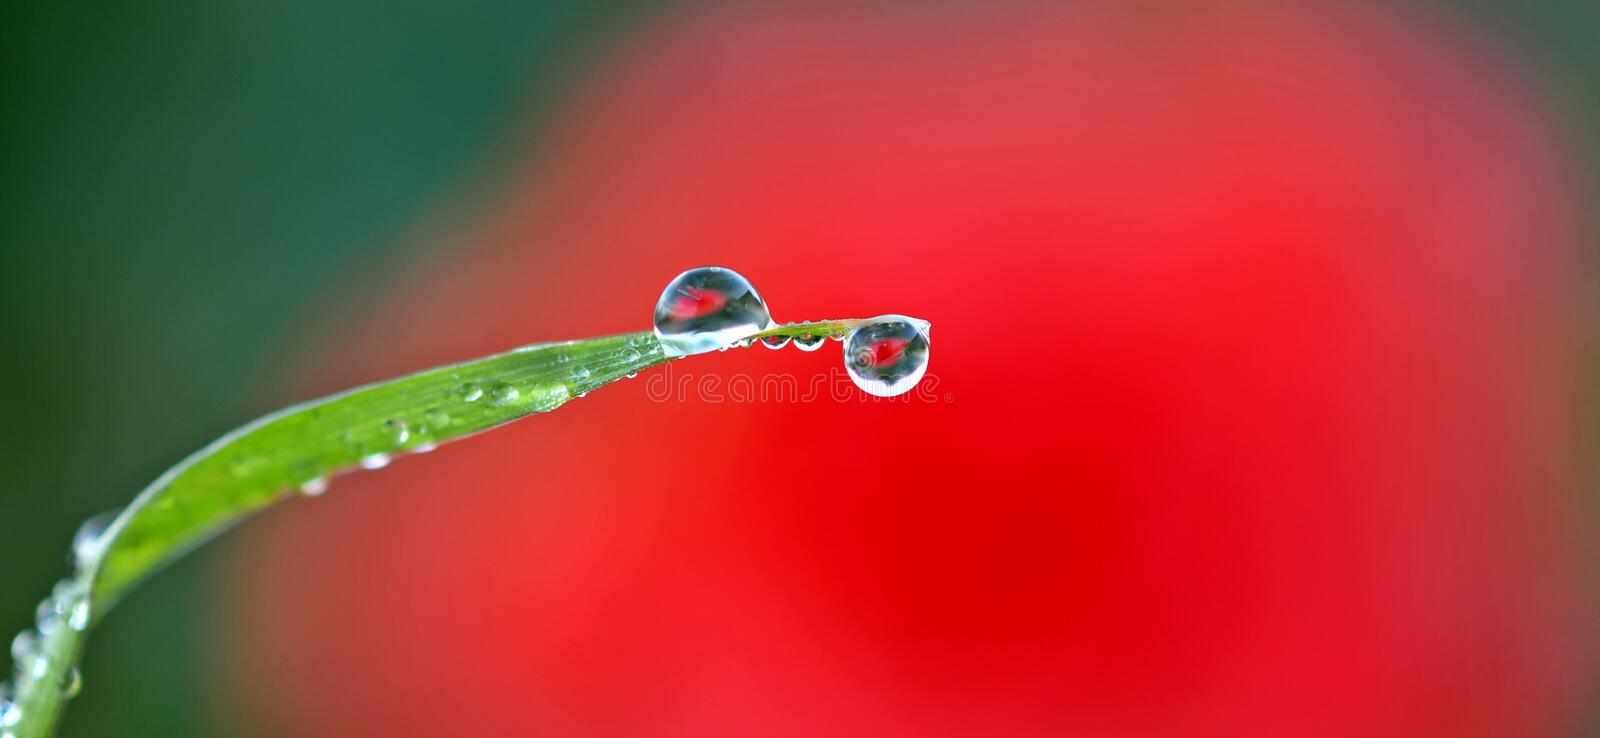 Beautiful images reflected by the drops of frost royalty free stock photography